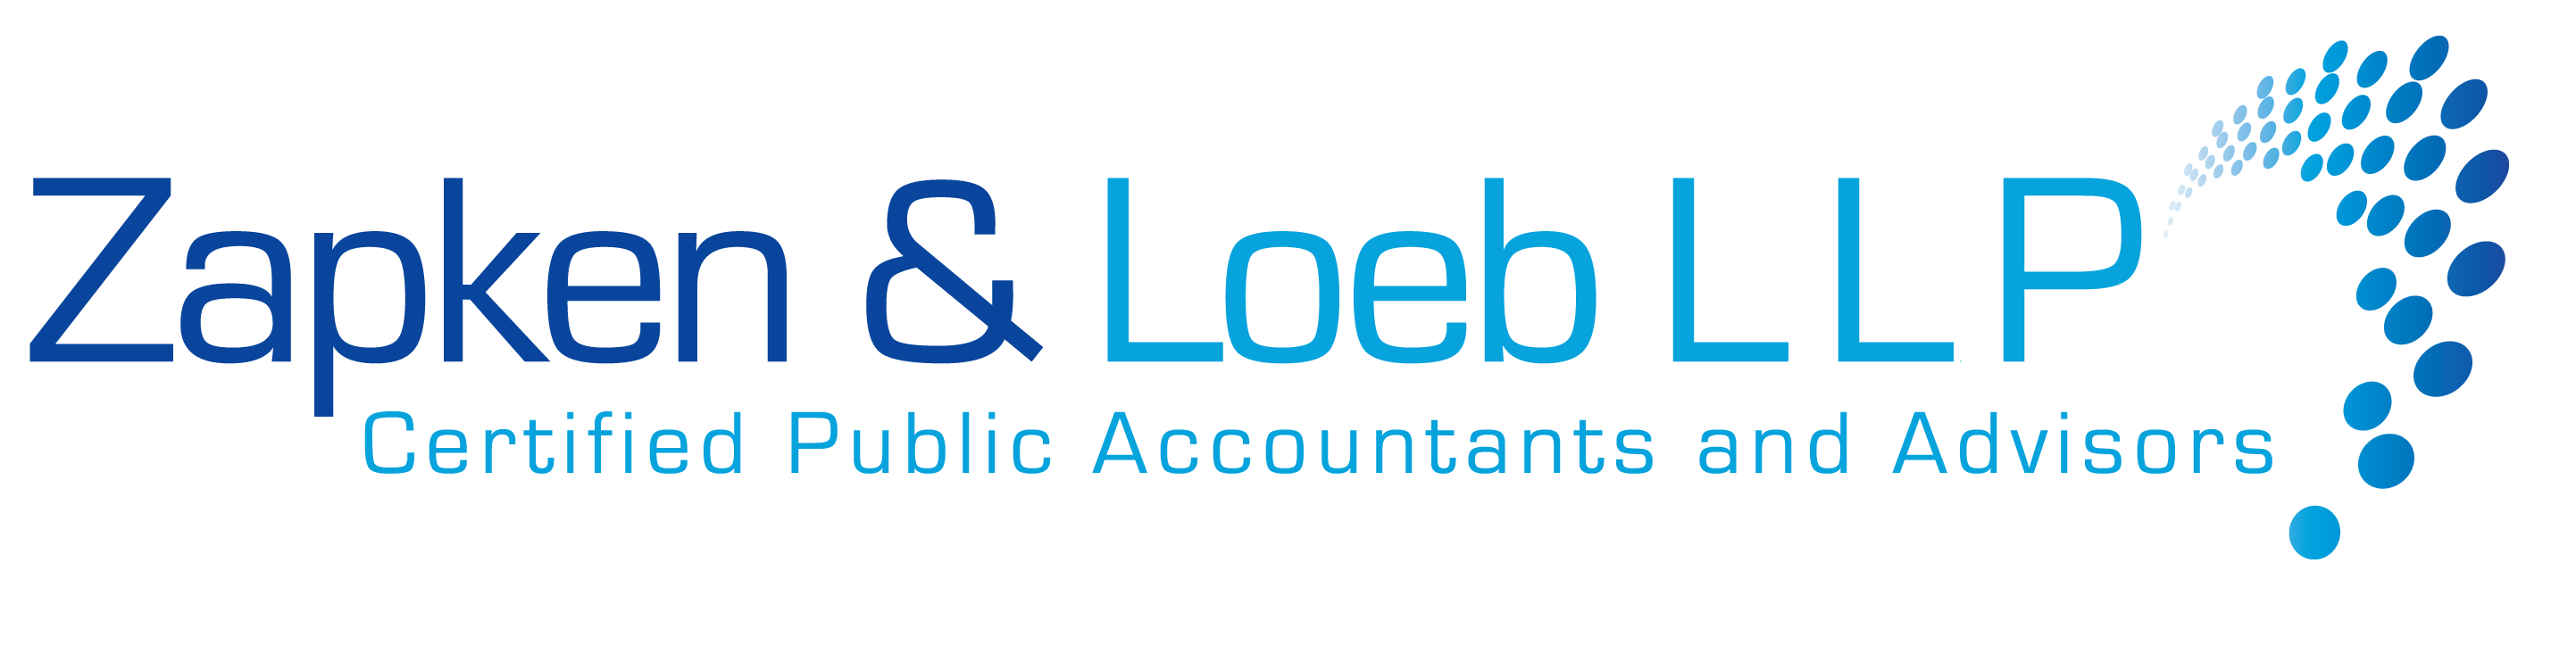 Woodbury, NY Accounting Firm | Life Events Page | Zapken & Loeb L.L.P.